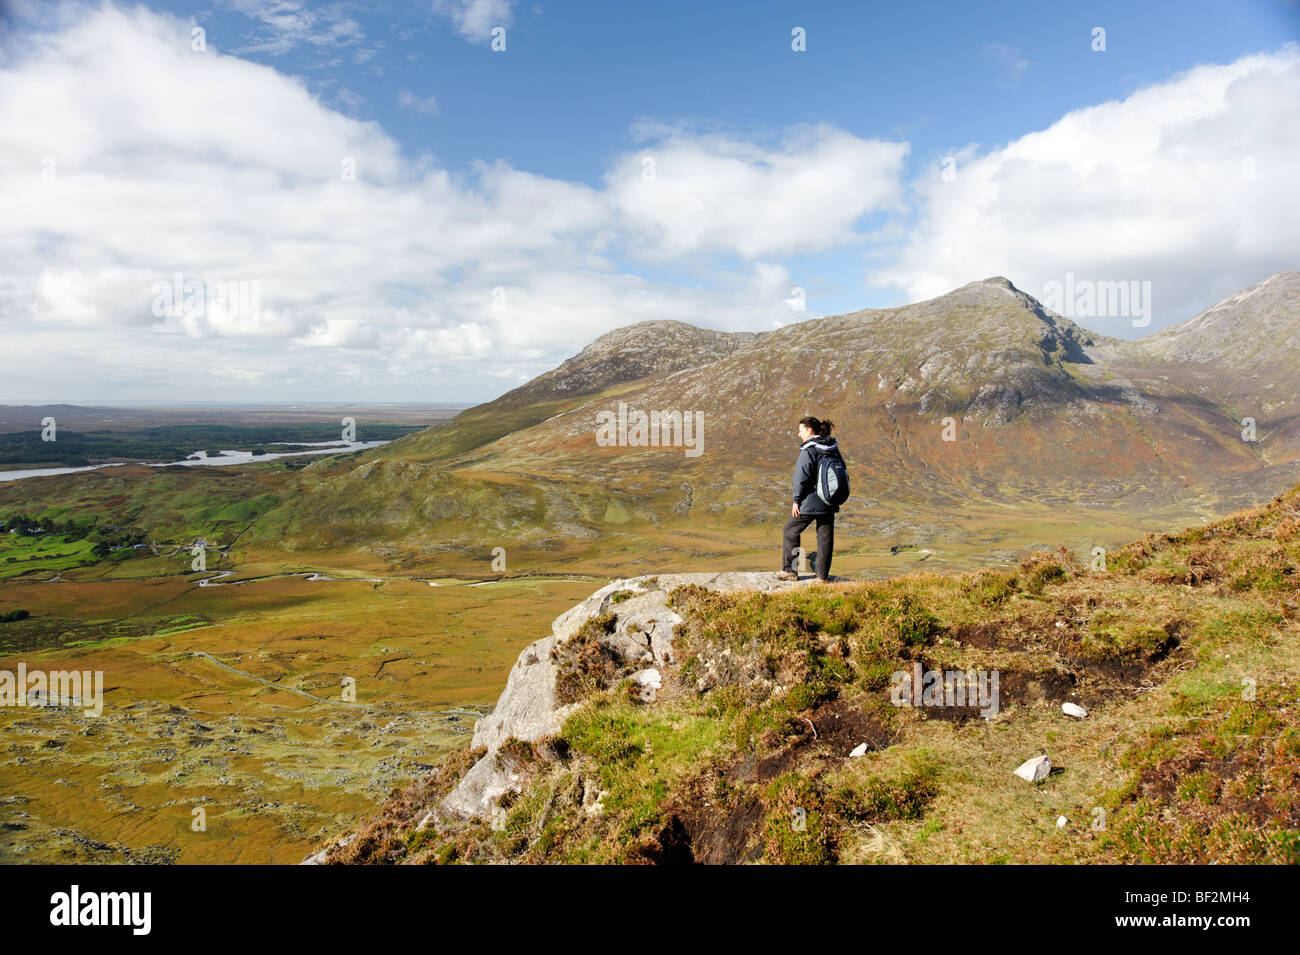 Hiker on Derryclare mountain with view to Benlettery, part of Twelve Bens mountain range. Connemara. Co Galway. - Stock Image